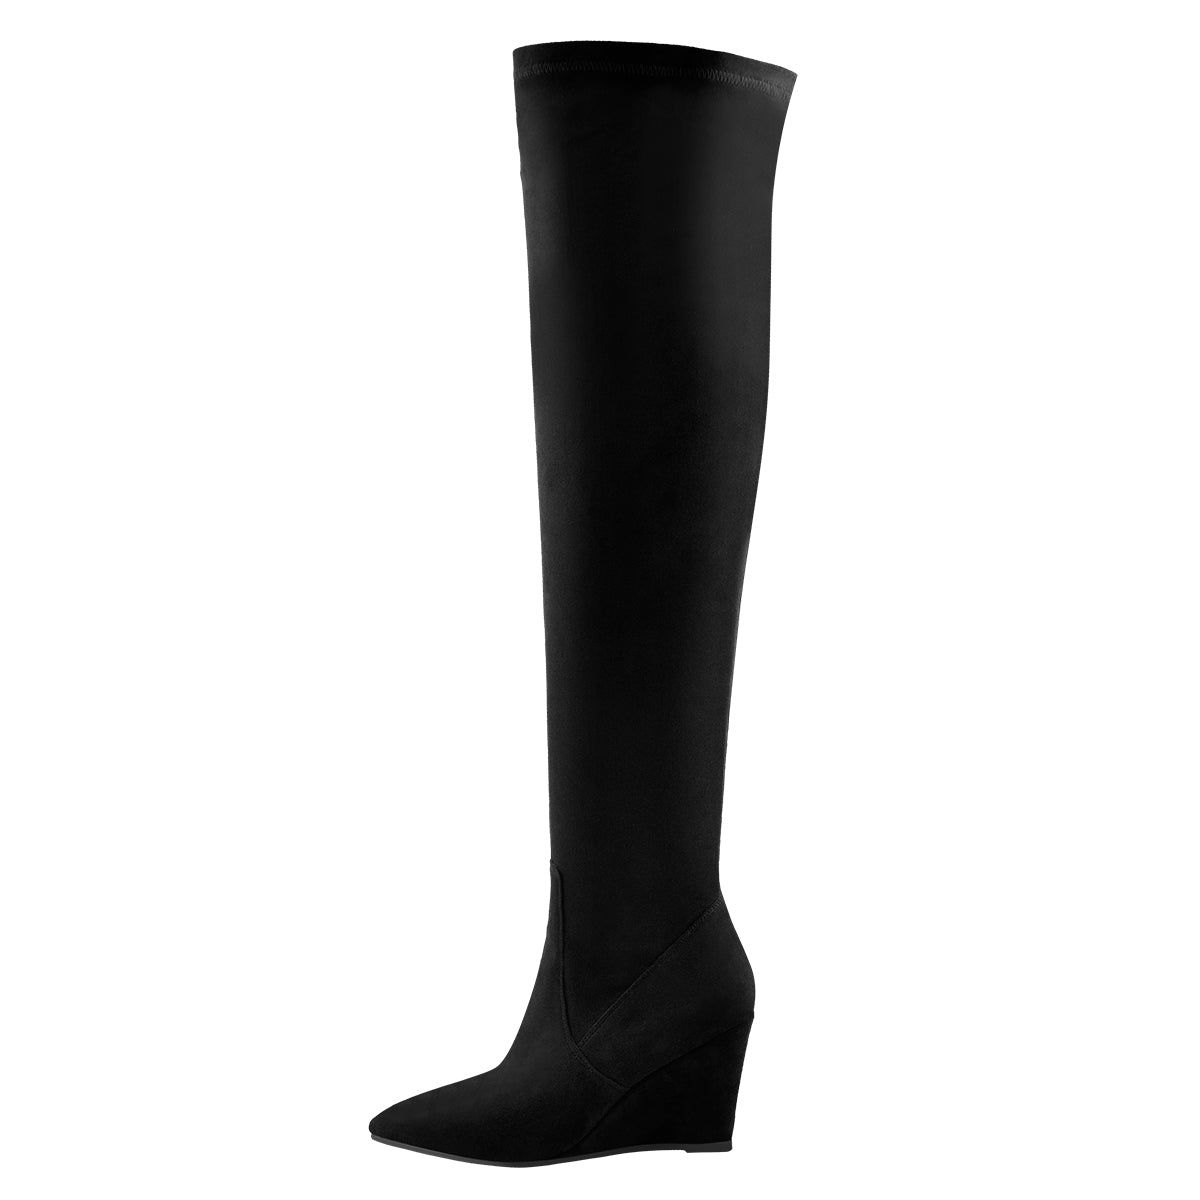 Black Suede Pointy Toe Wedge Heel Knee High Boots